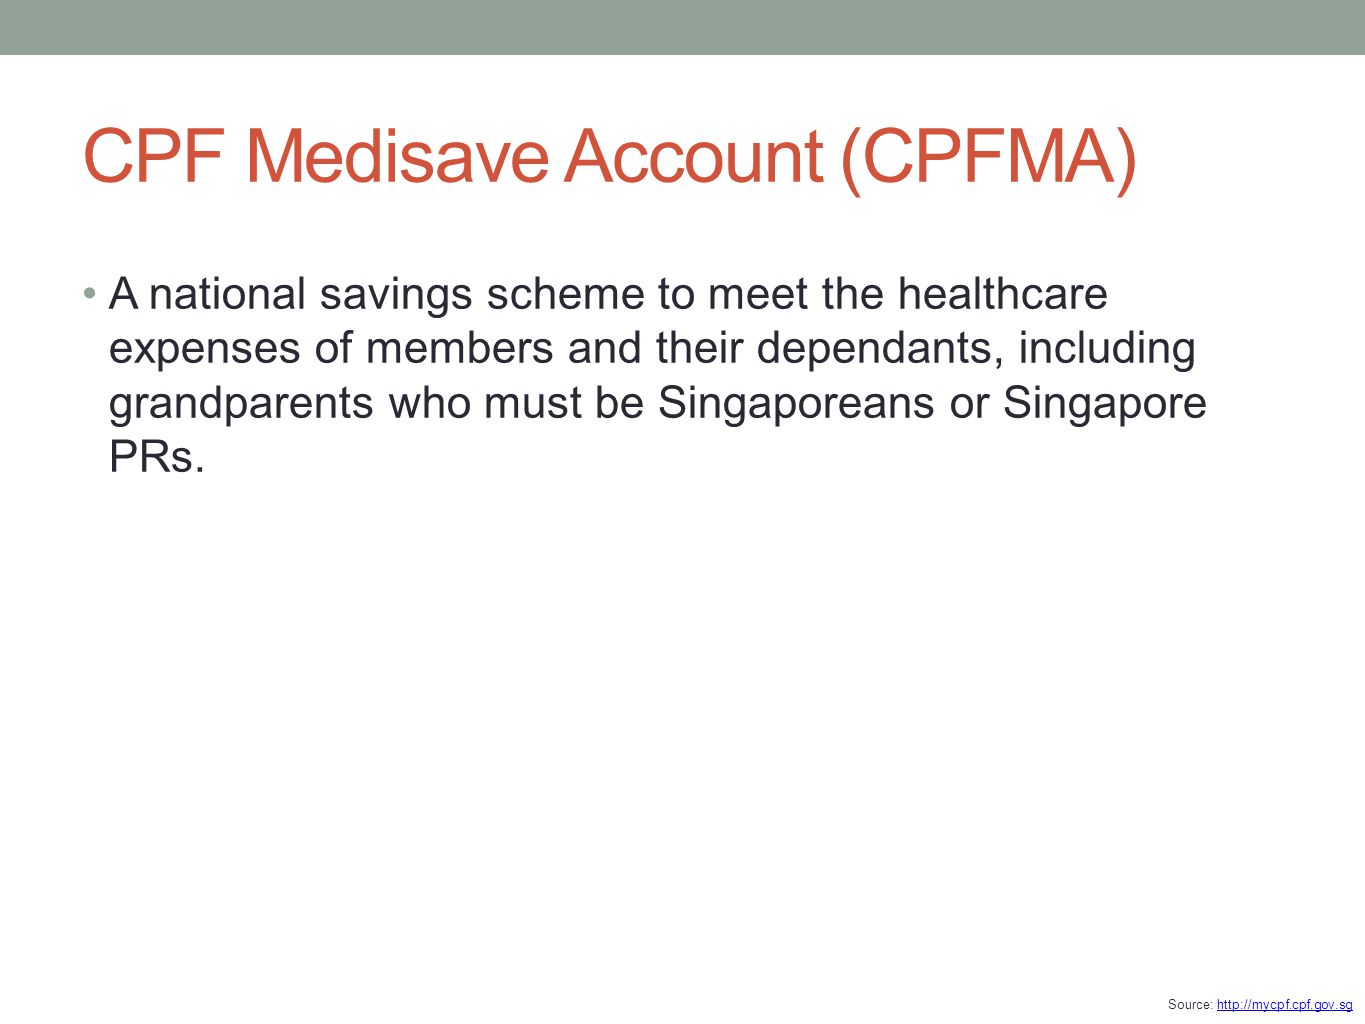 CPF Medisave Account (CPFMA)